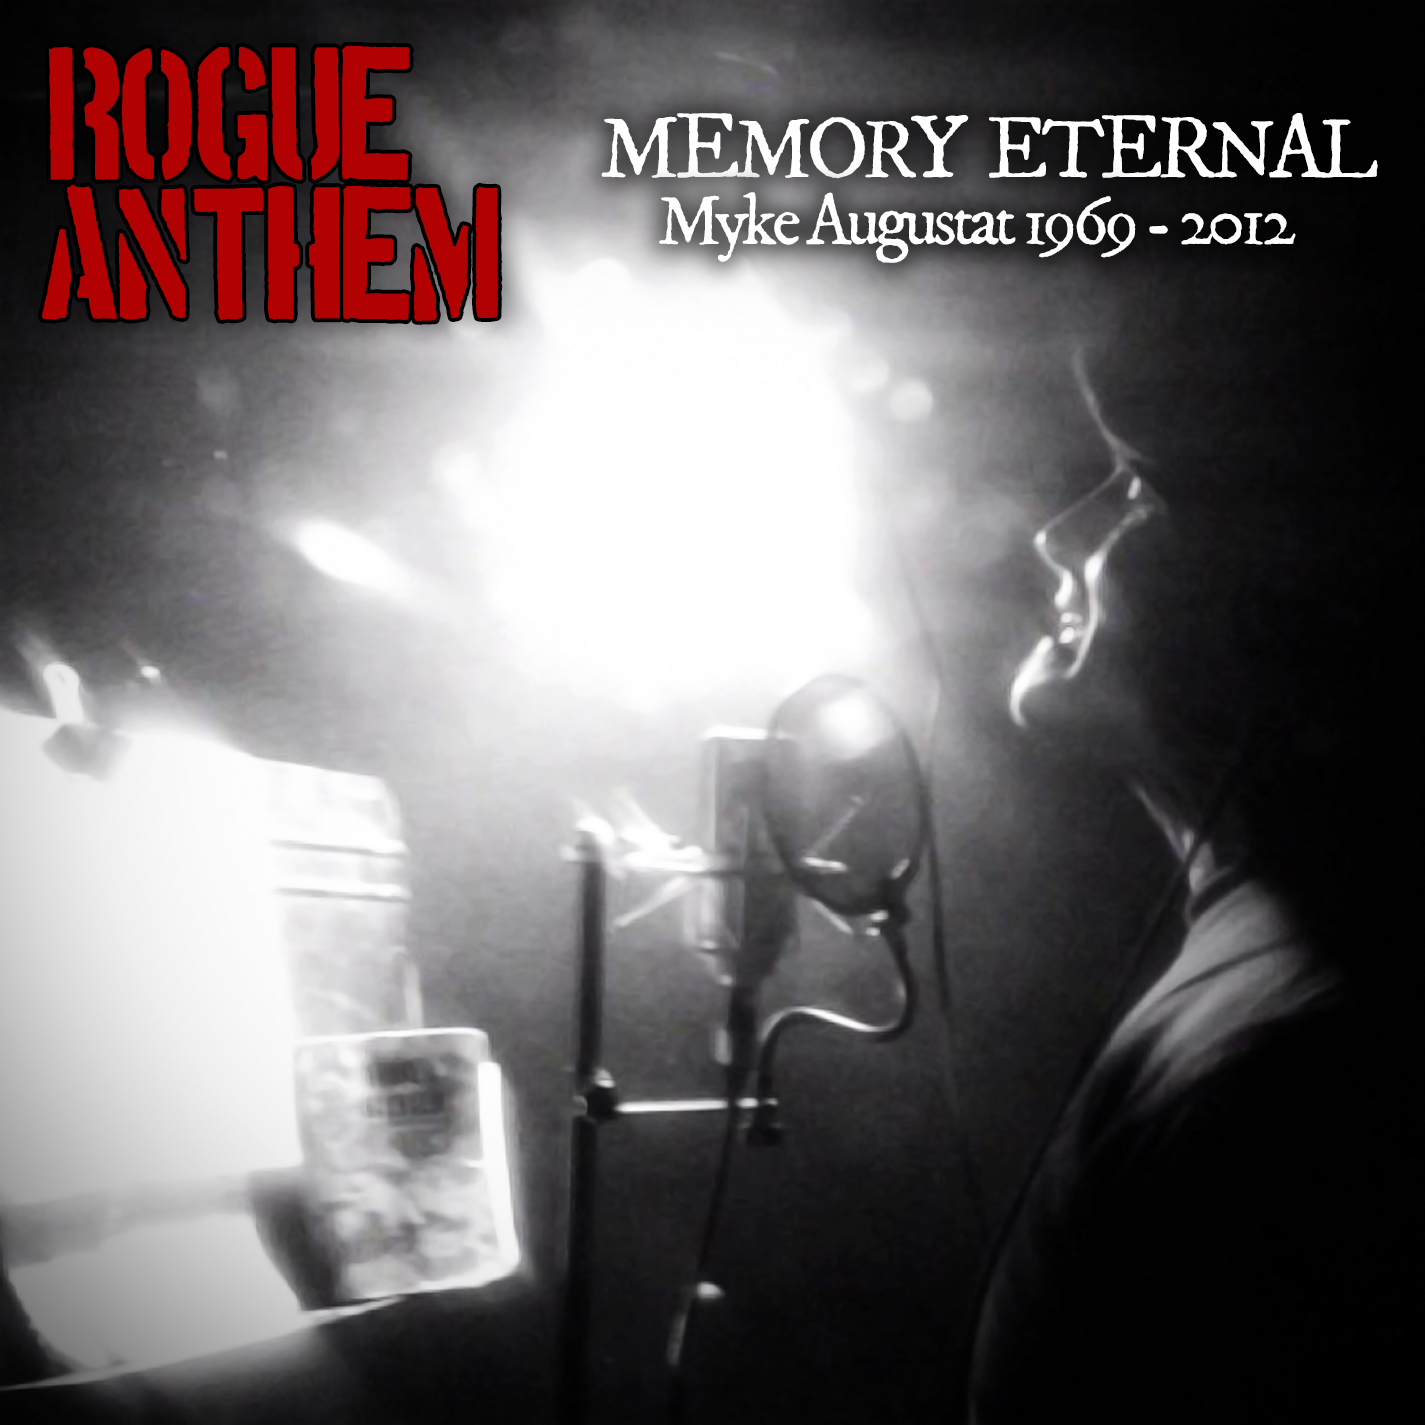 Rogue Anthem Front Cover 1425x1425.jpg